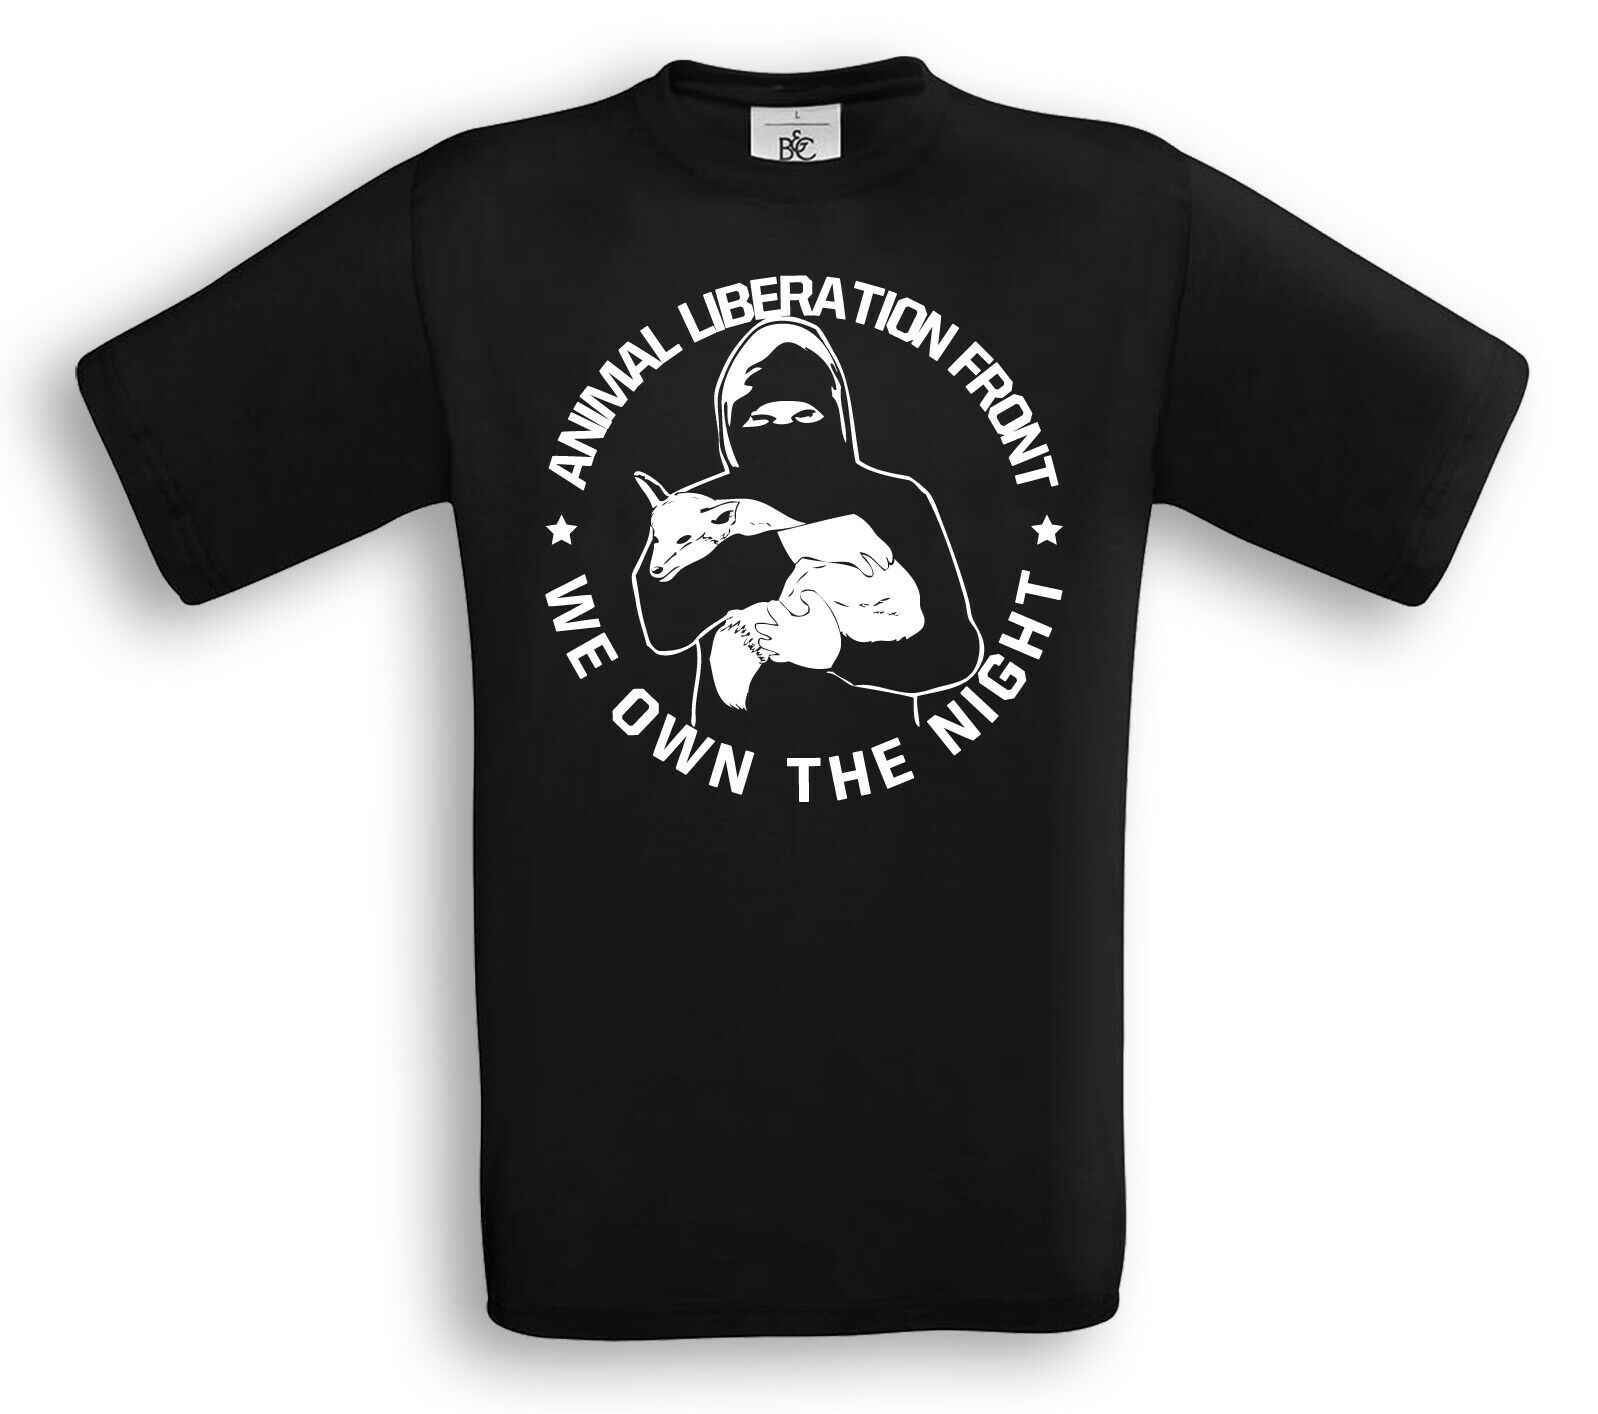 ANIMAL LIBERATION I WE OWN THE NIGHT T-Shirt Vegan Tierrecht Tierbefreiung